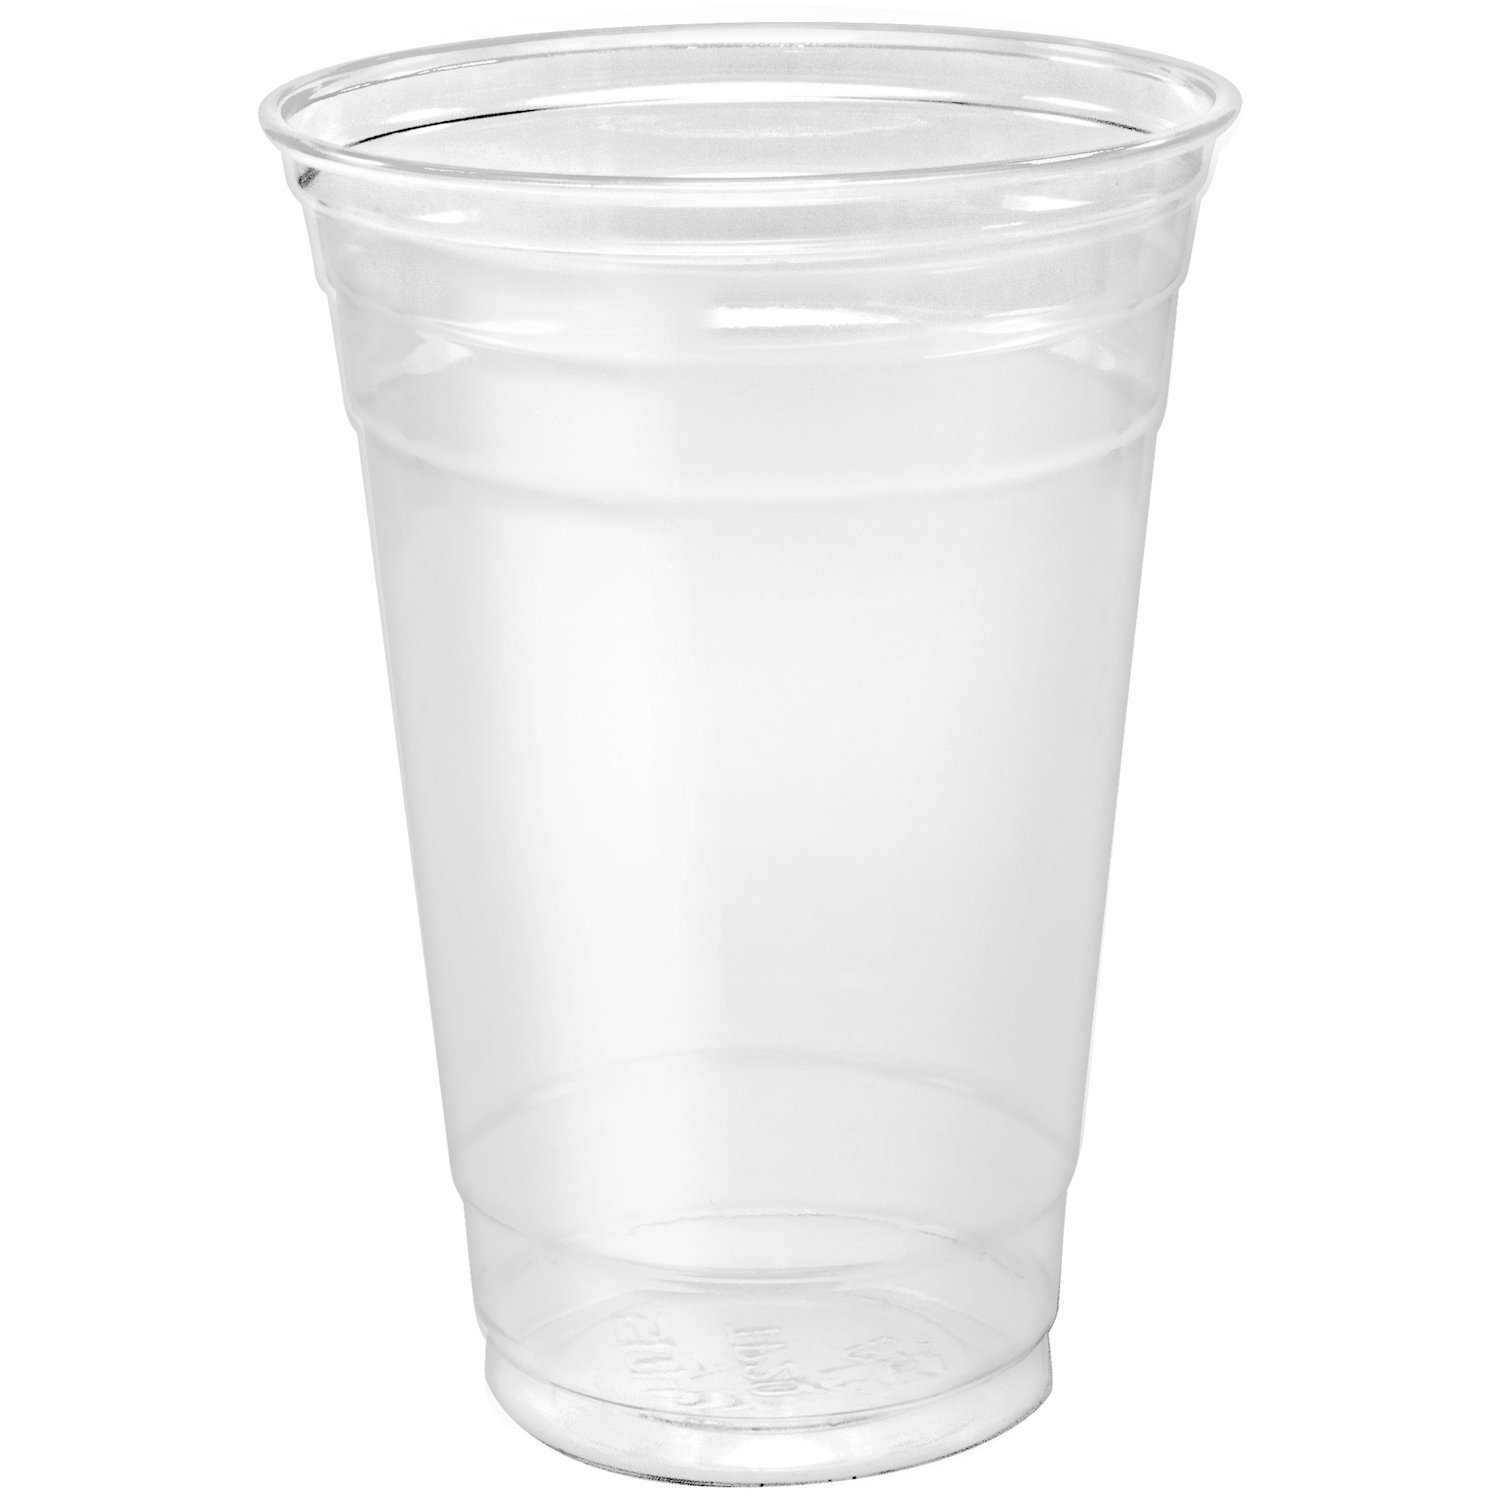 18-DCCTP20 - Dart TP20 Ultra Clear Cup PET 20 oz 600/carton